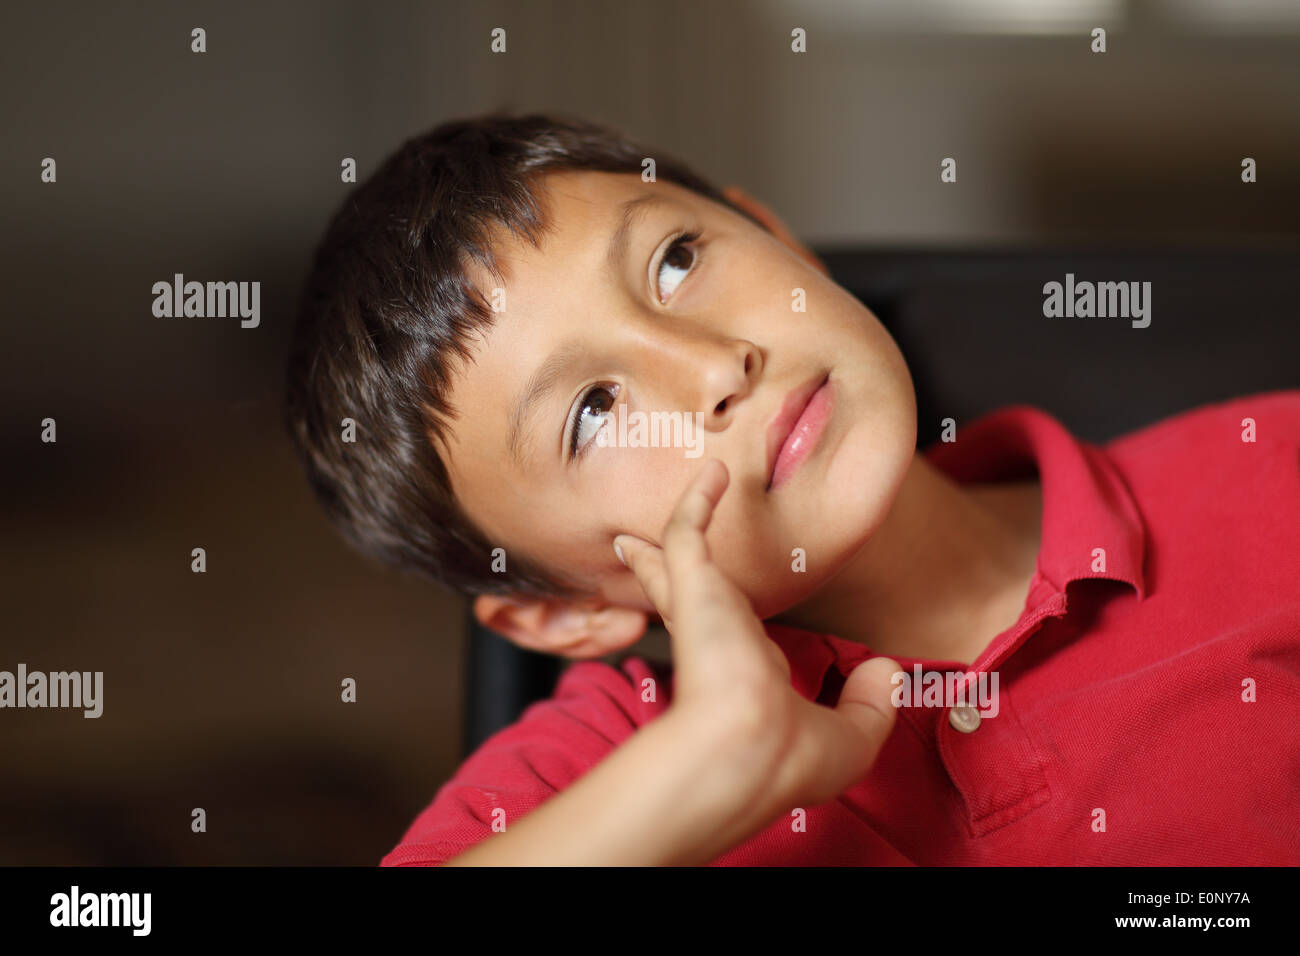 Boy thinking or day dreaming when doing homework - with very shallow depth of field and copy space - Stock Image